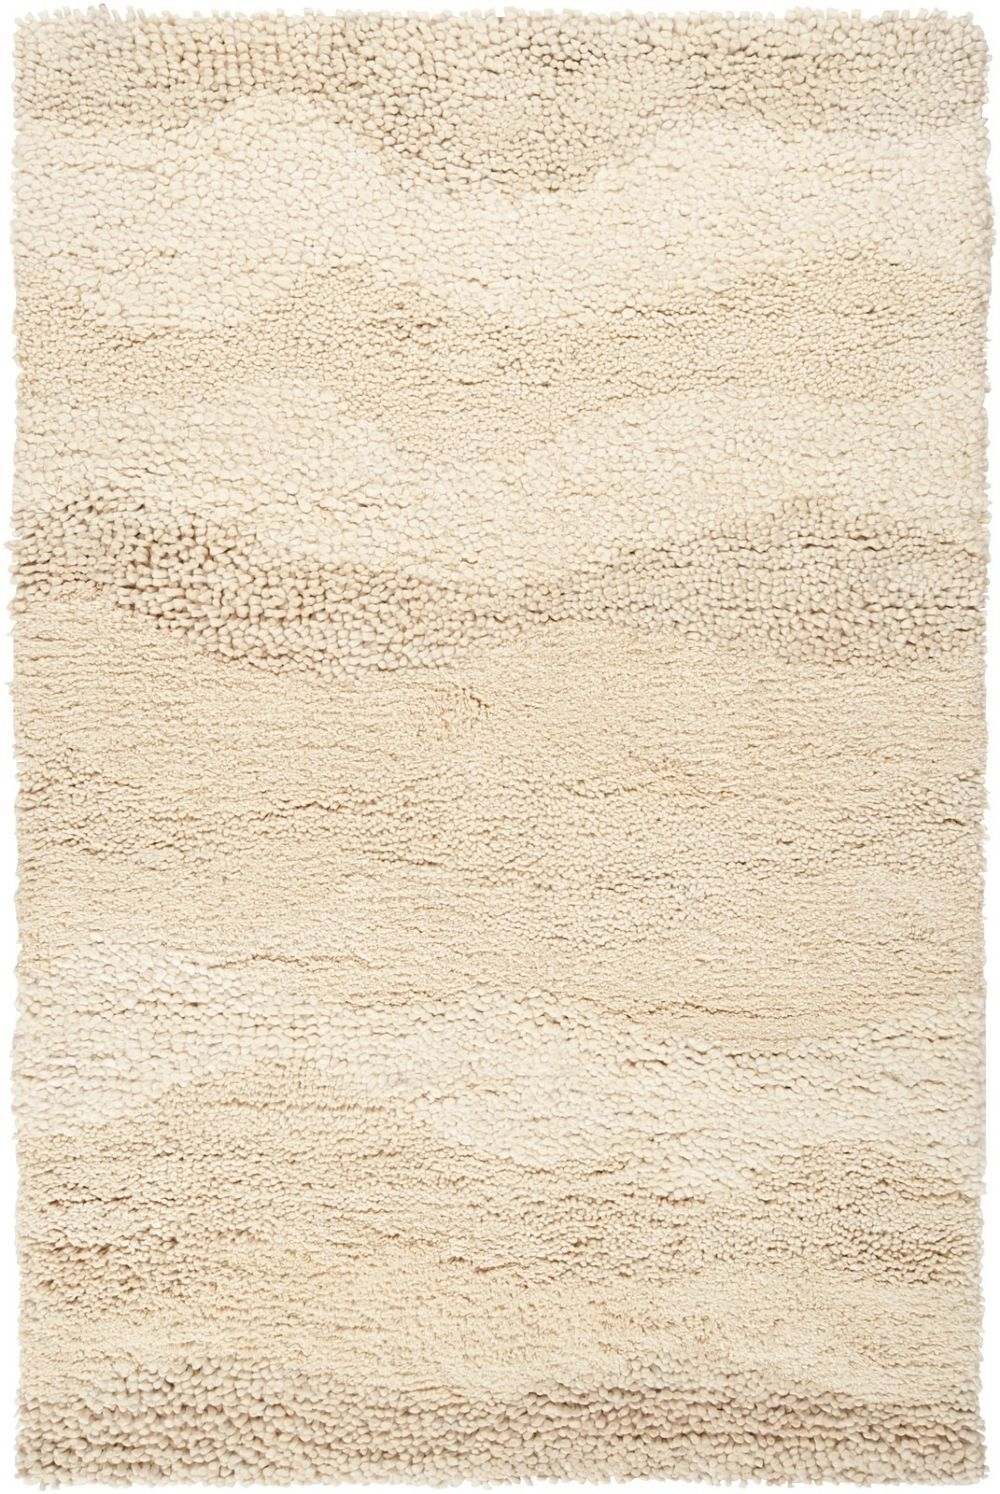 surya topography plush area rug collection